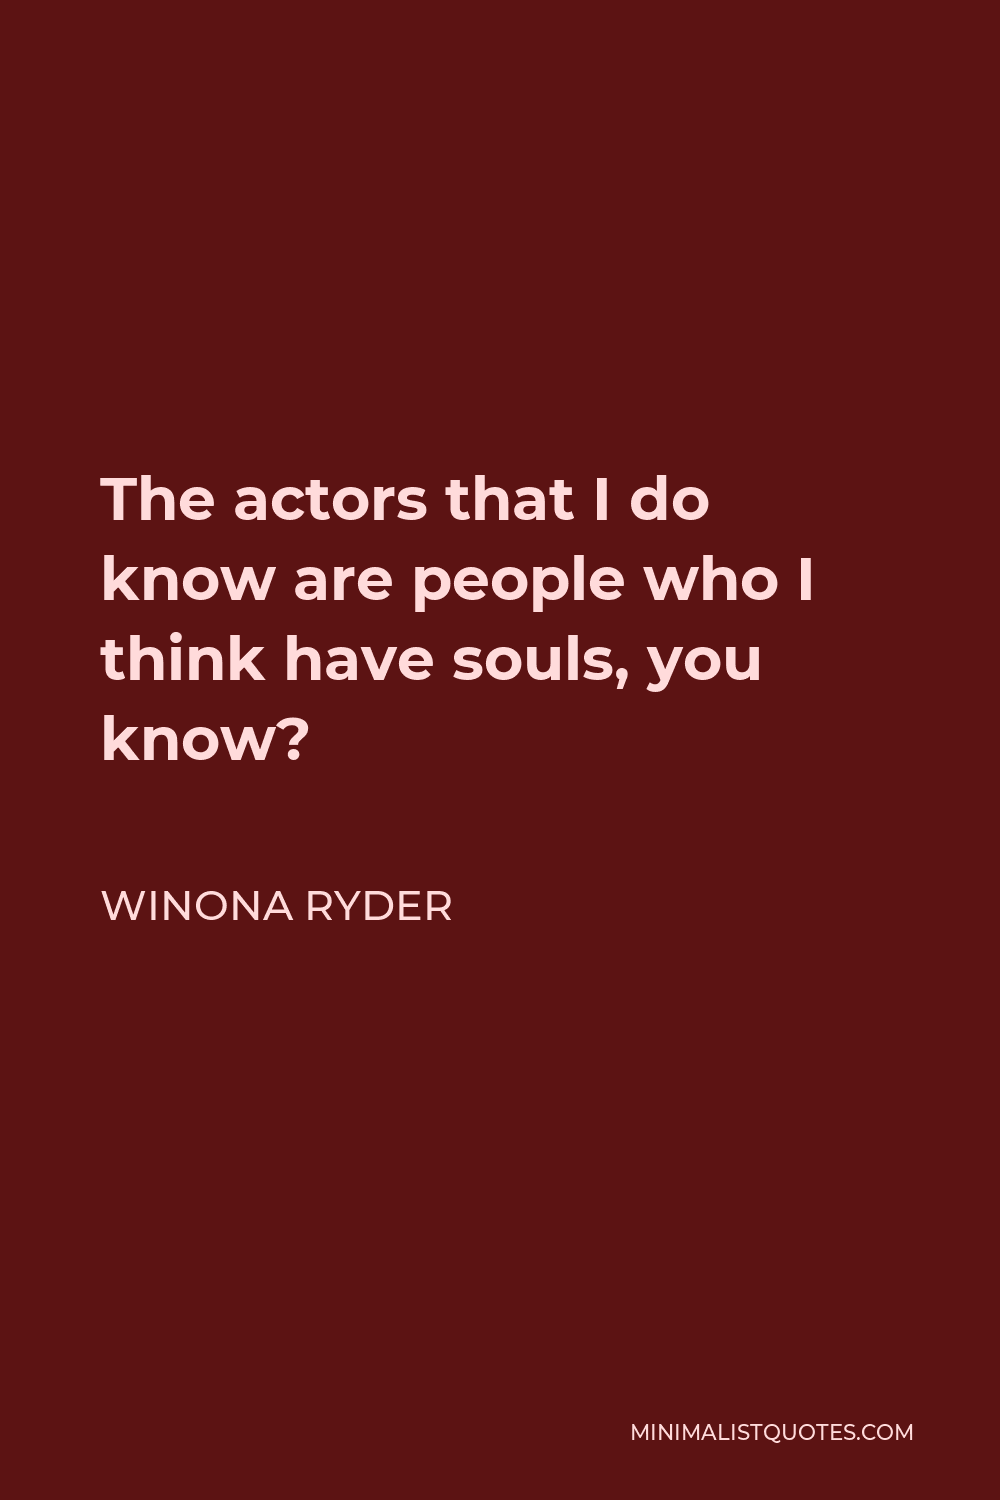 Winona Ryder Quote - The actors that I do know are people who I think have souls, you know?